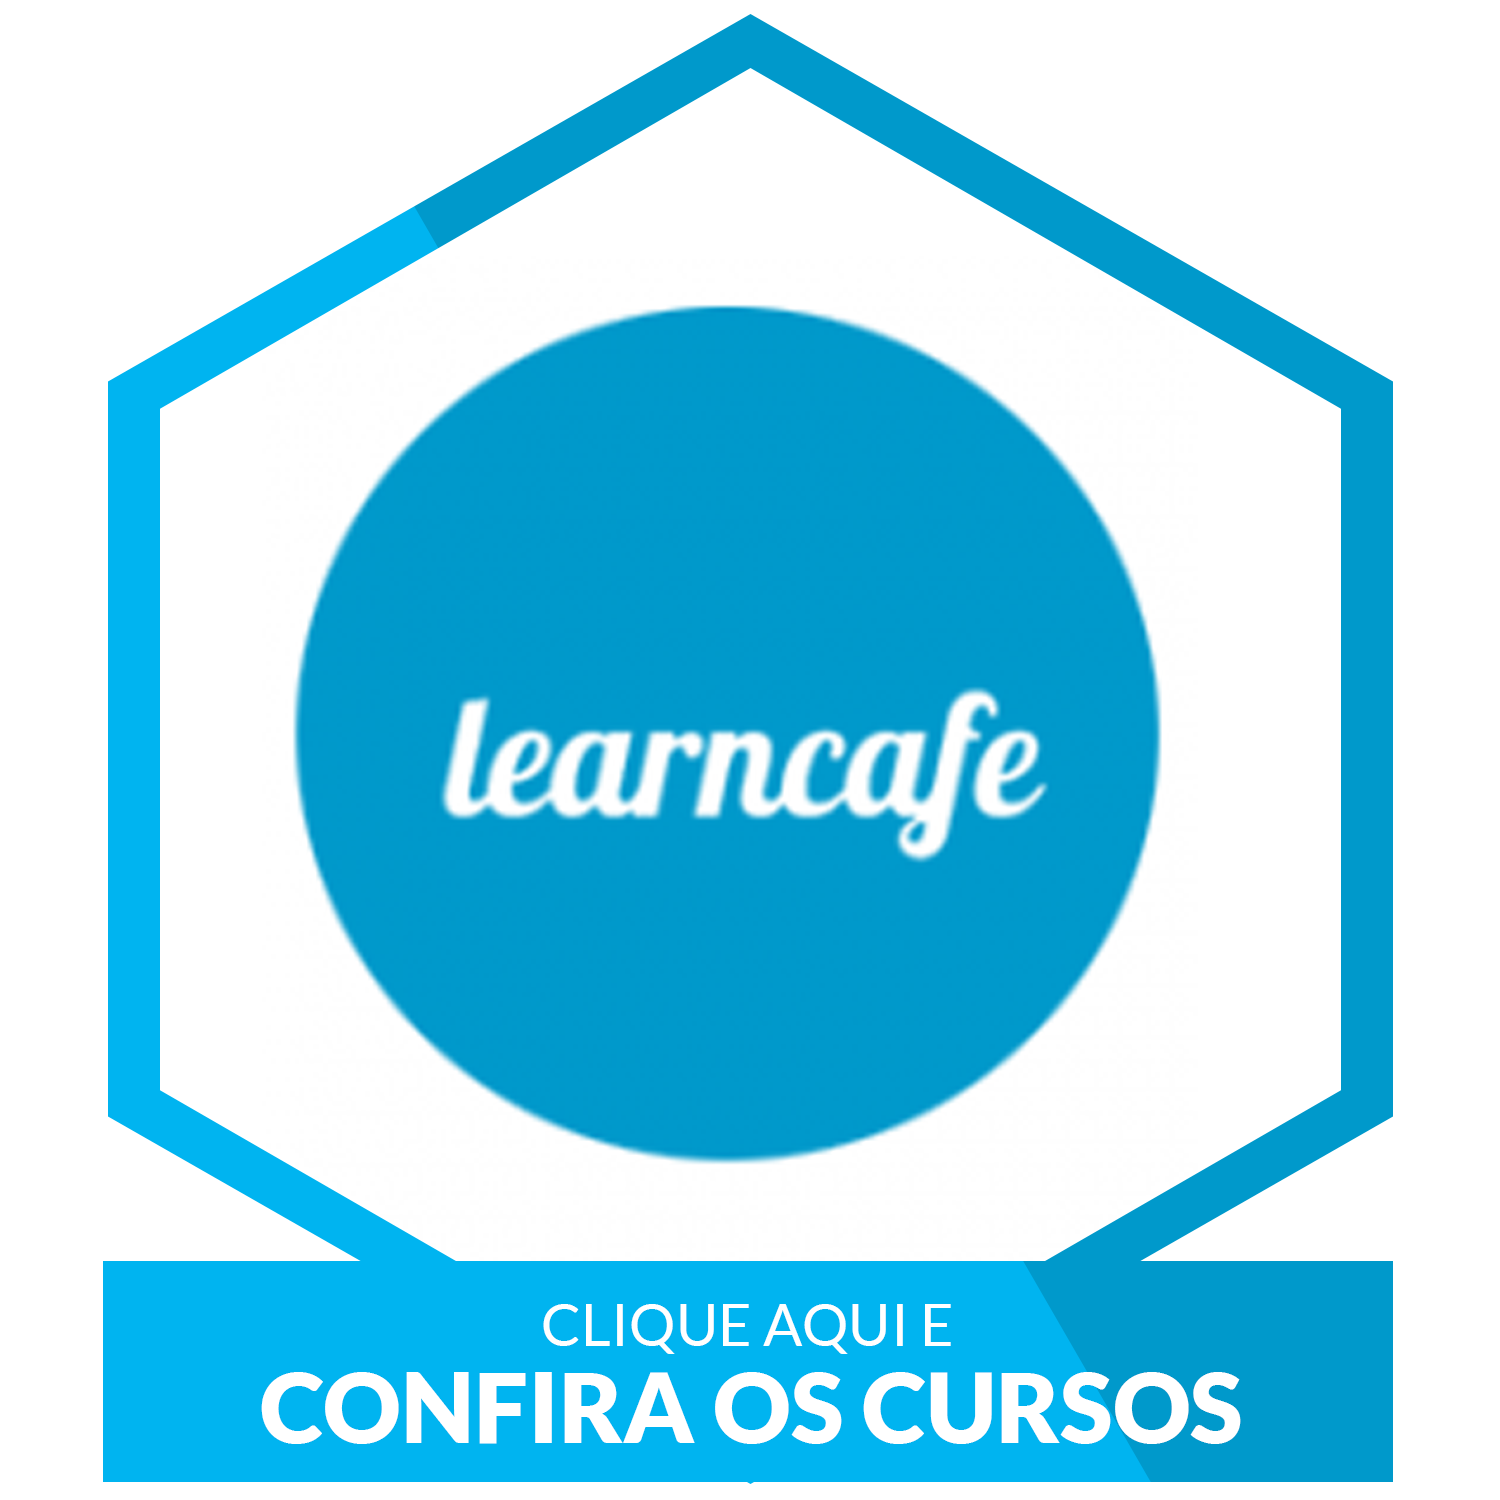 logo-learncafe.png